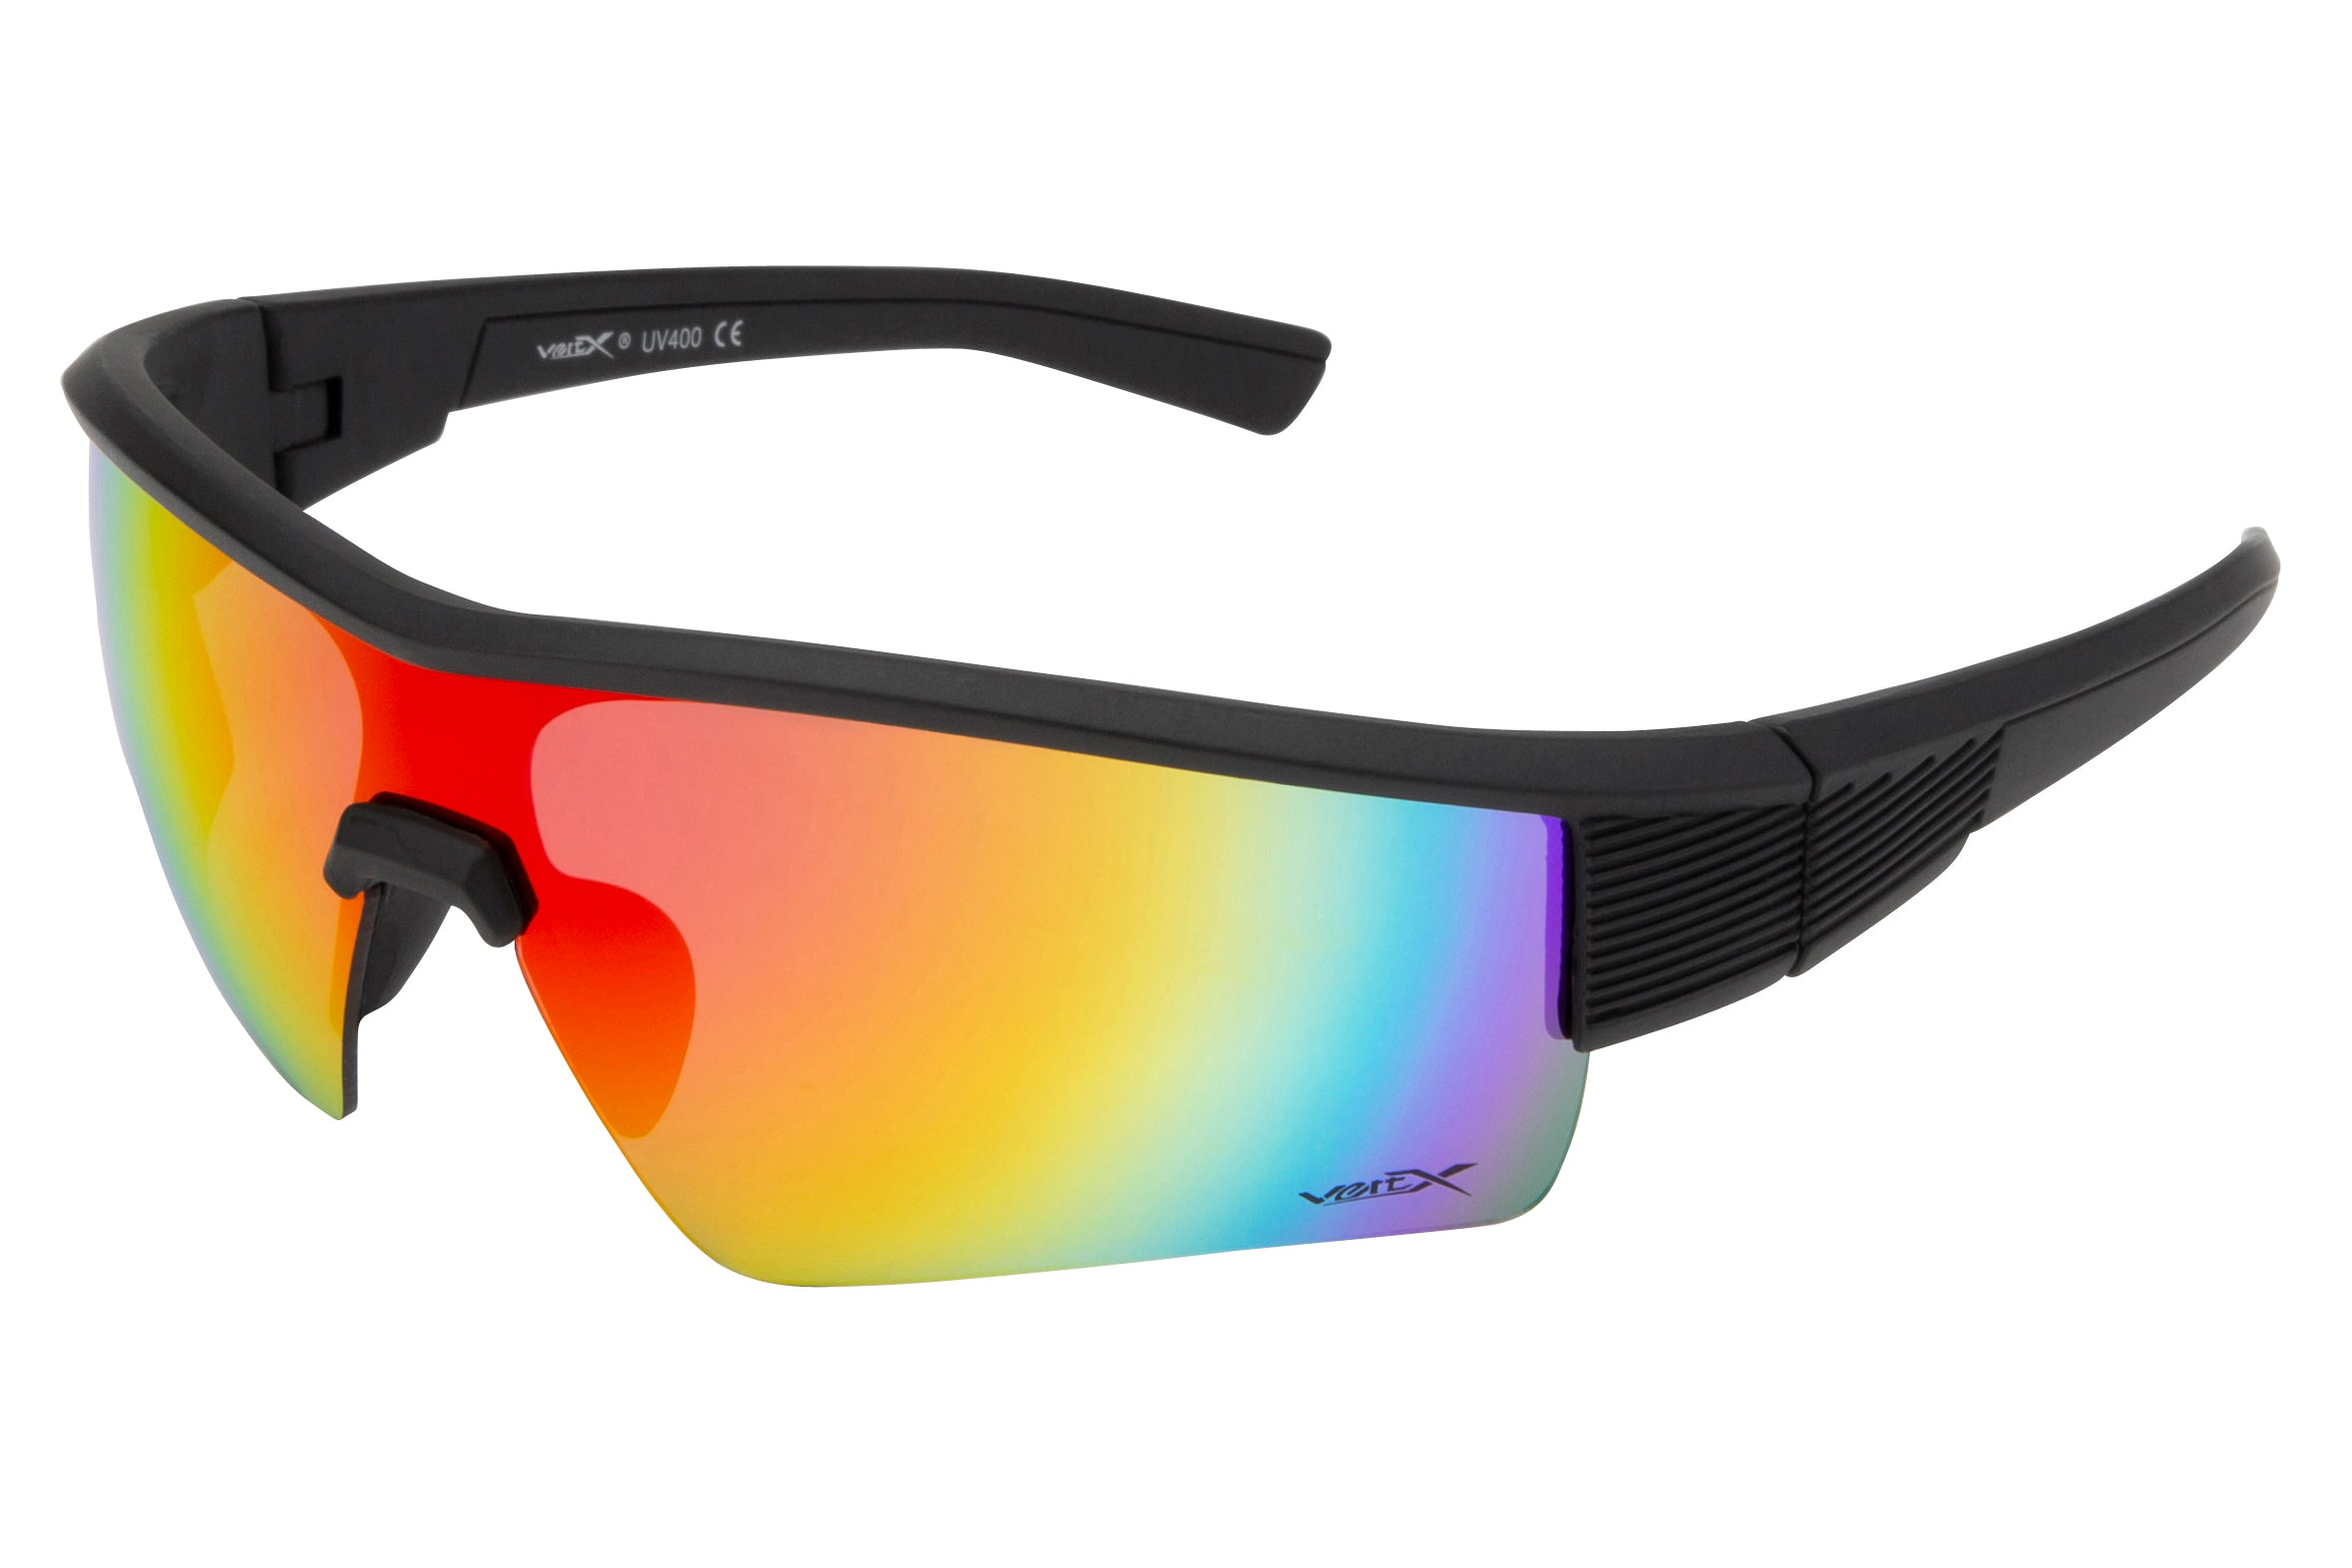 59087 - VertX PC Sports Sunglasses